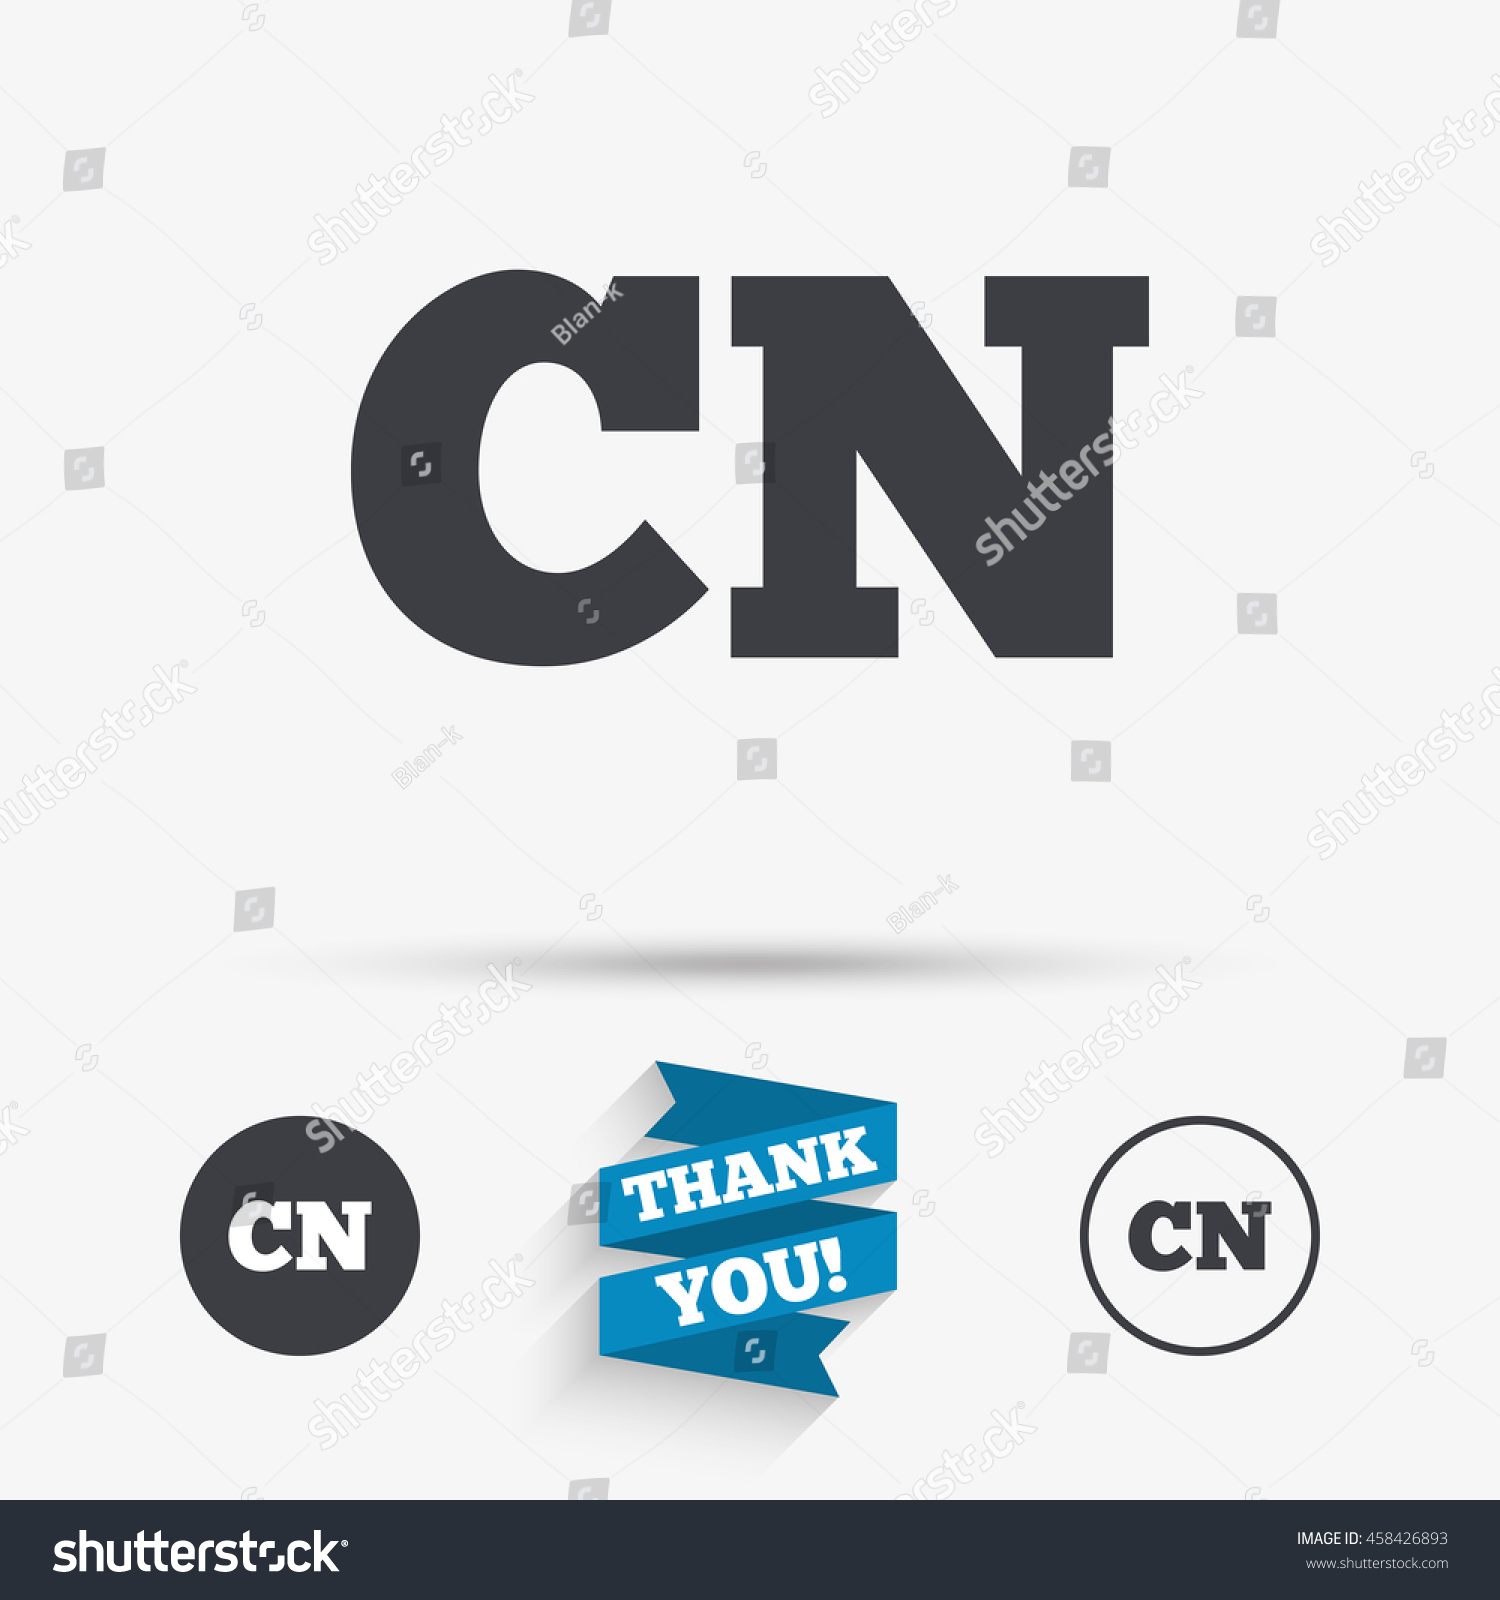 Thank you chinese symbol images symbol and sign ideas chinese language sign icon cn china stock vector 458426893 chinese language sign icon cn china translation buycottarizona